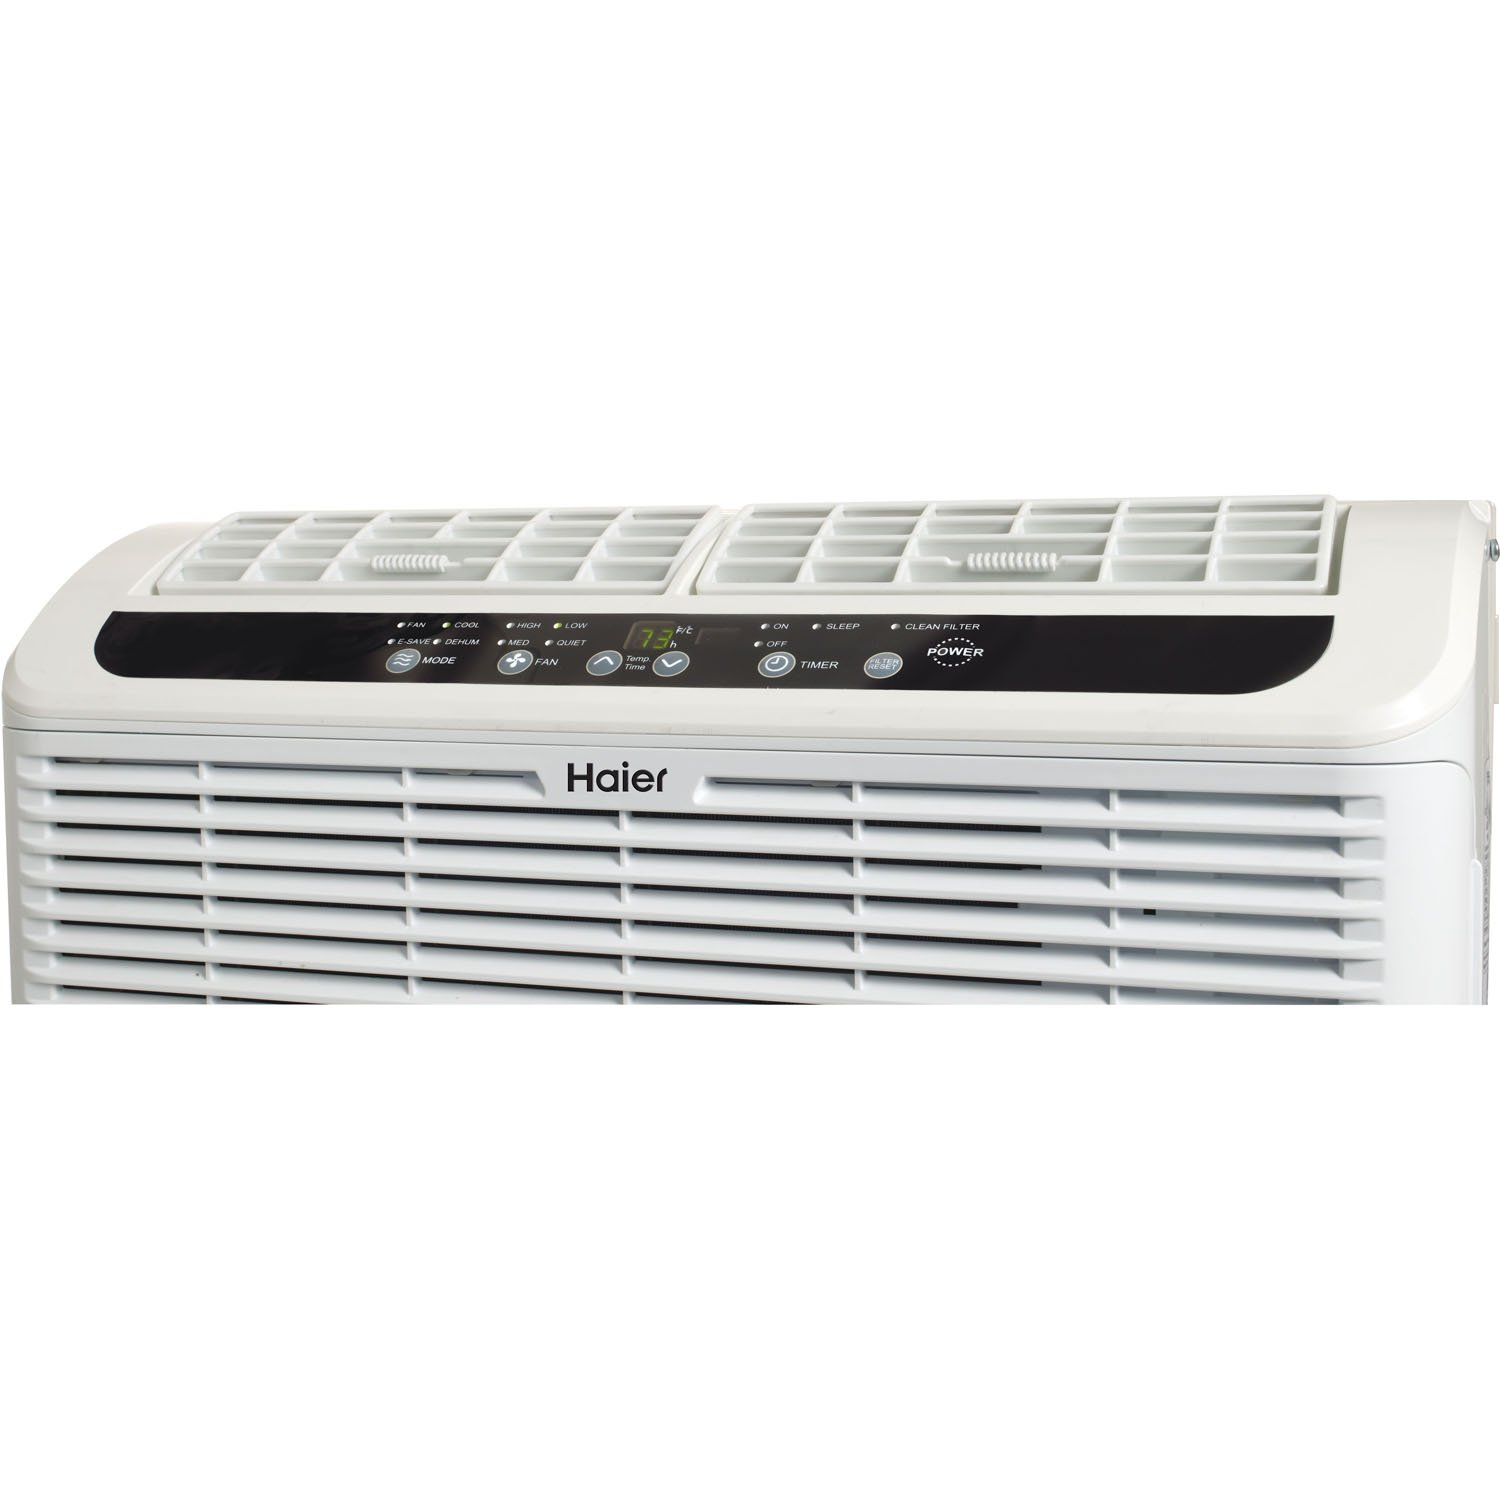 haier esaq406p serenity series 6050 btu 115v window air conditioner with led remote control. amazon.com: haier esaq406p serenity series 6050 btu 115v window air conditioner with led remote control: home \u0026 kitchen esaq406p btu 115v led control .